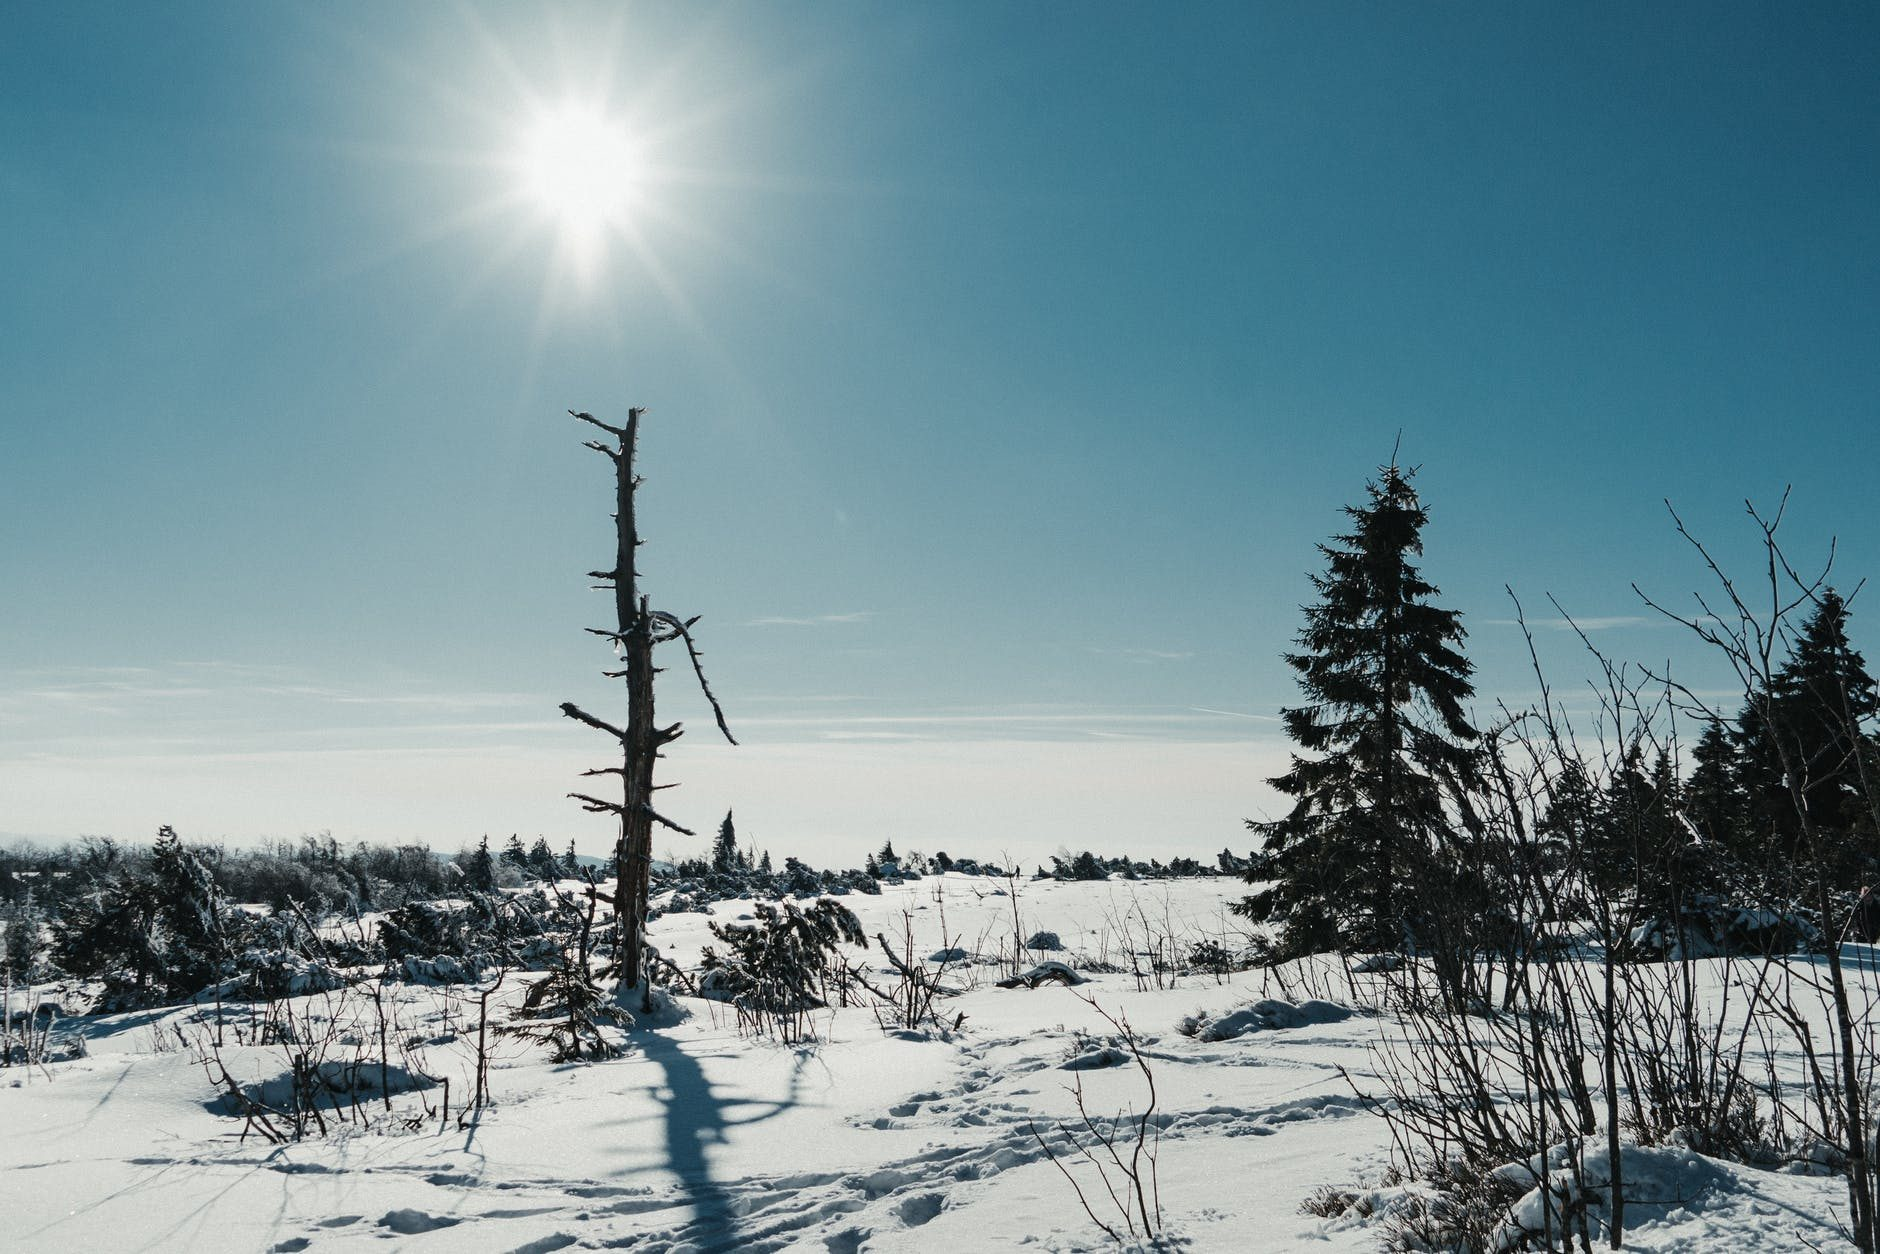 snowy landscape covered with snow and fir trees